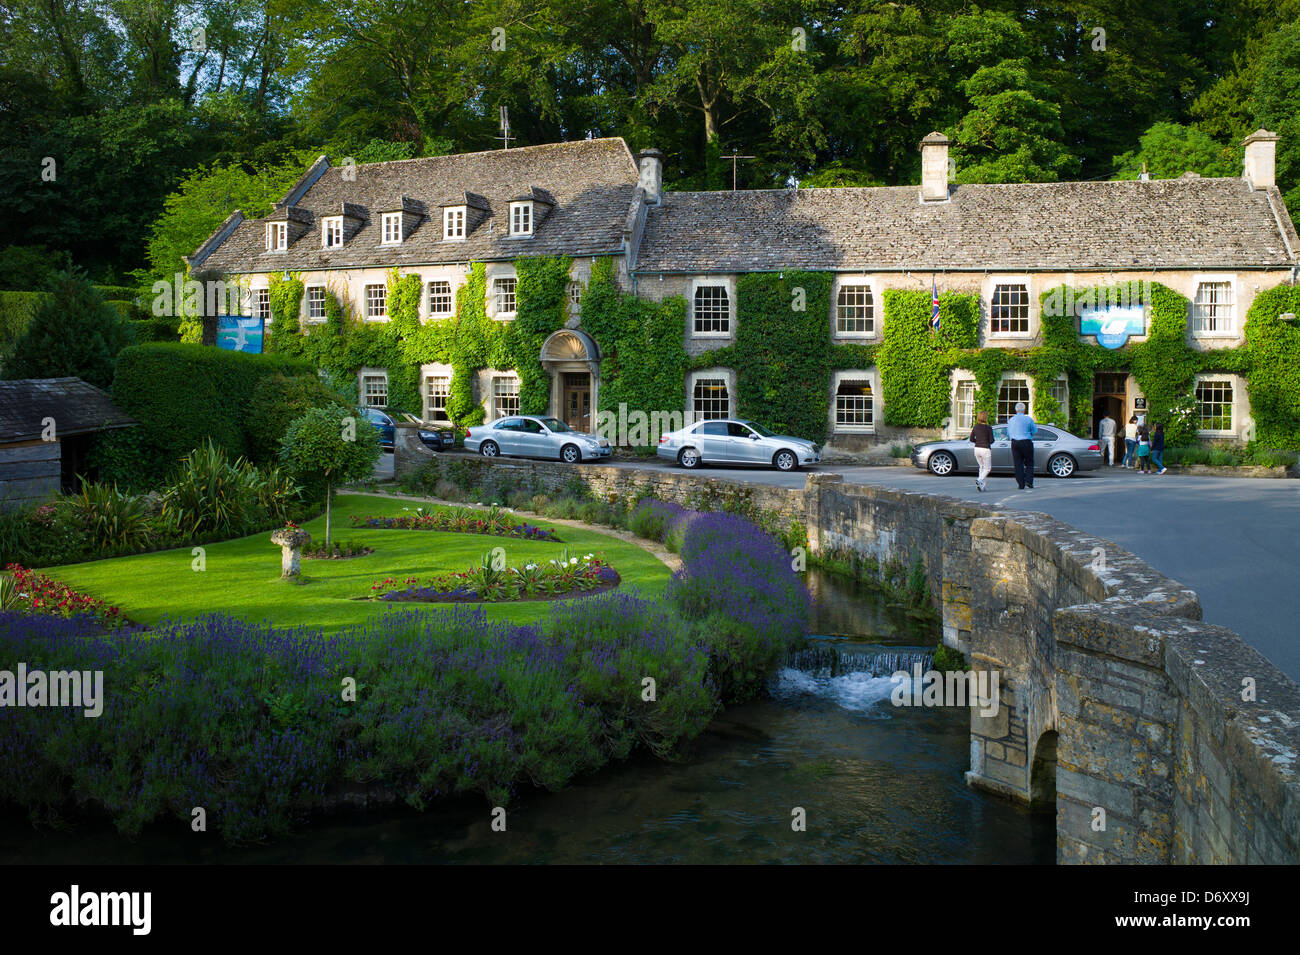 Swan Hotel and River Coln at Bibury in The Cotswolds UK. L to R: Audi A8, Mercedes C Class (2 silver cars), BMW - Stock Image